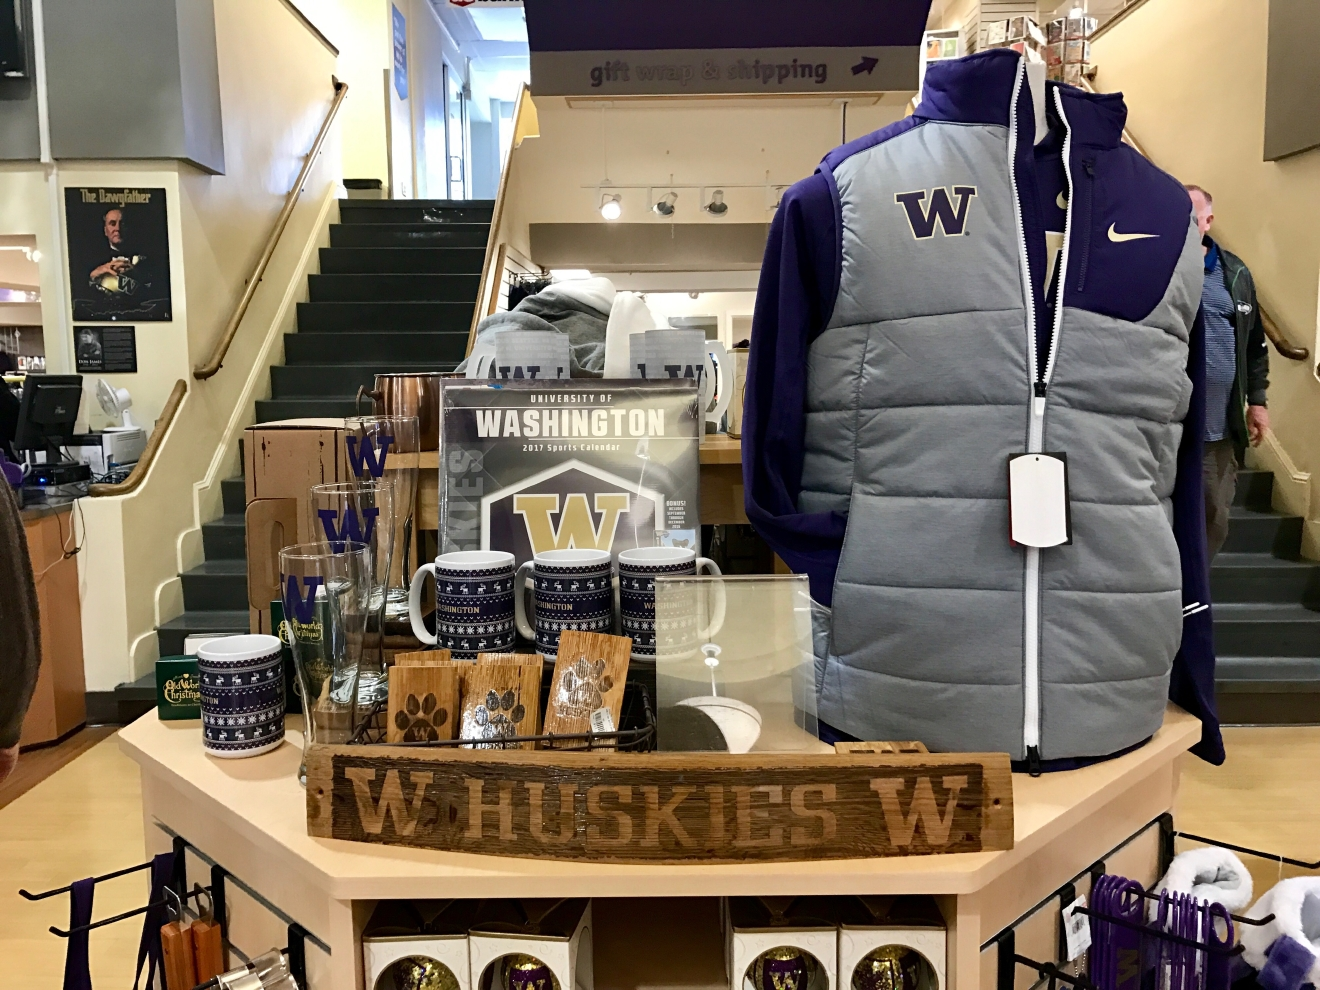 Whether you're a current student, alum, or just *love* the Dawgs, it's a pretty exciting time to be a Husky fan right now. Just to catch you up, the University of Washington football team is having one of their best seasons in years, and will be playing the Peach Bowl in Atlanta on December 31st. If you know a Dawg fan, they're probably salivating at the mouth right about now. Which is why it's a perfect time to give them a themed gift! Here are some of the coolest Husky gear we saw at the University Bookstore on the Avenue during our last visit. Pro Tip: They're open 10 a.m. - 7 p.m. on Christmas Eve! (Image: Britt Thorson / Seattle Refined)